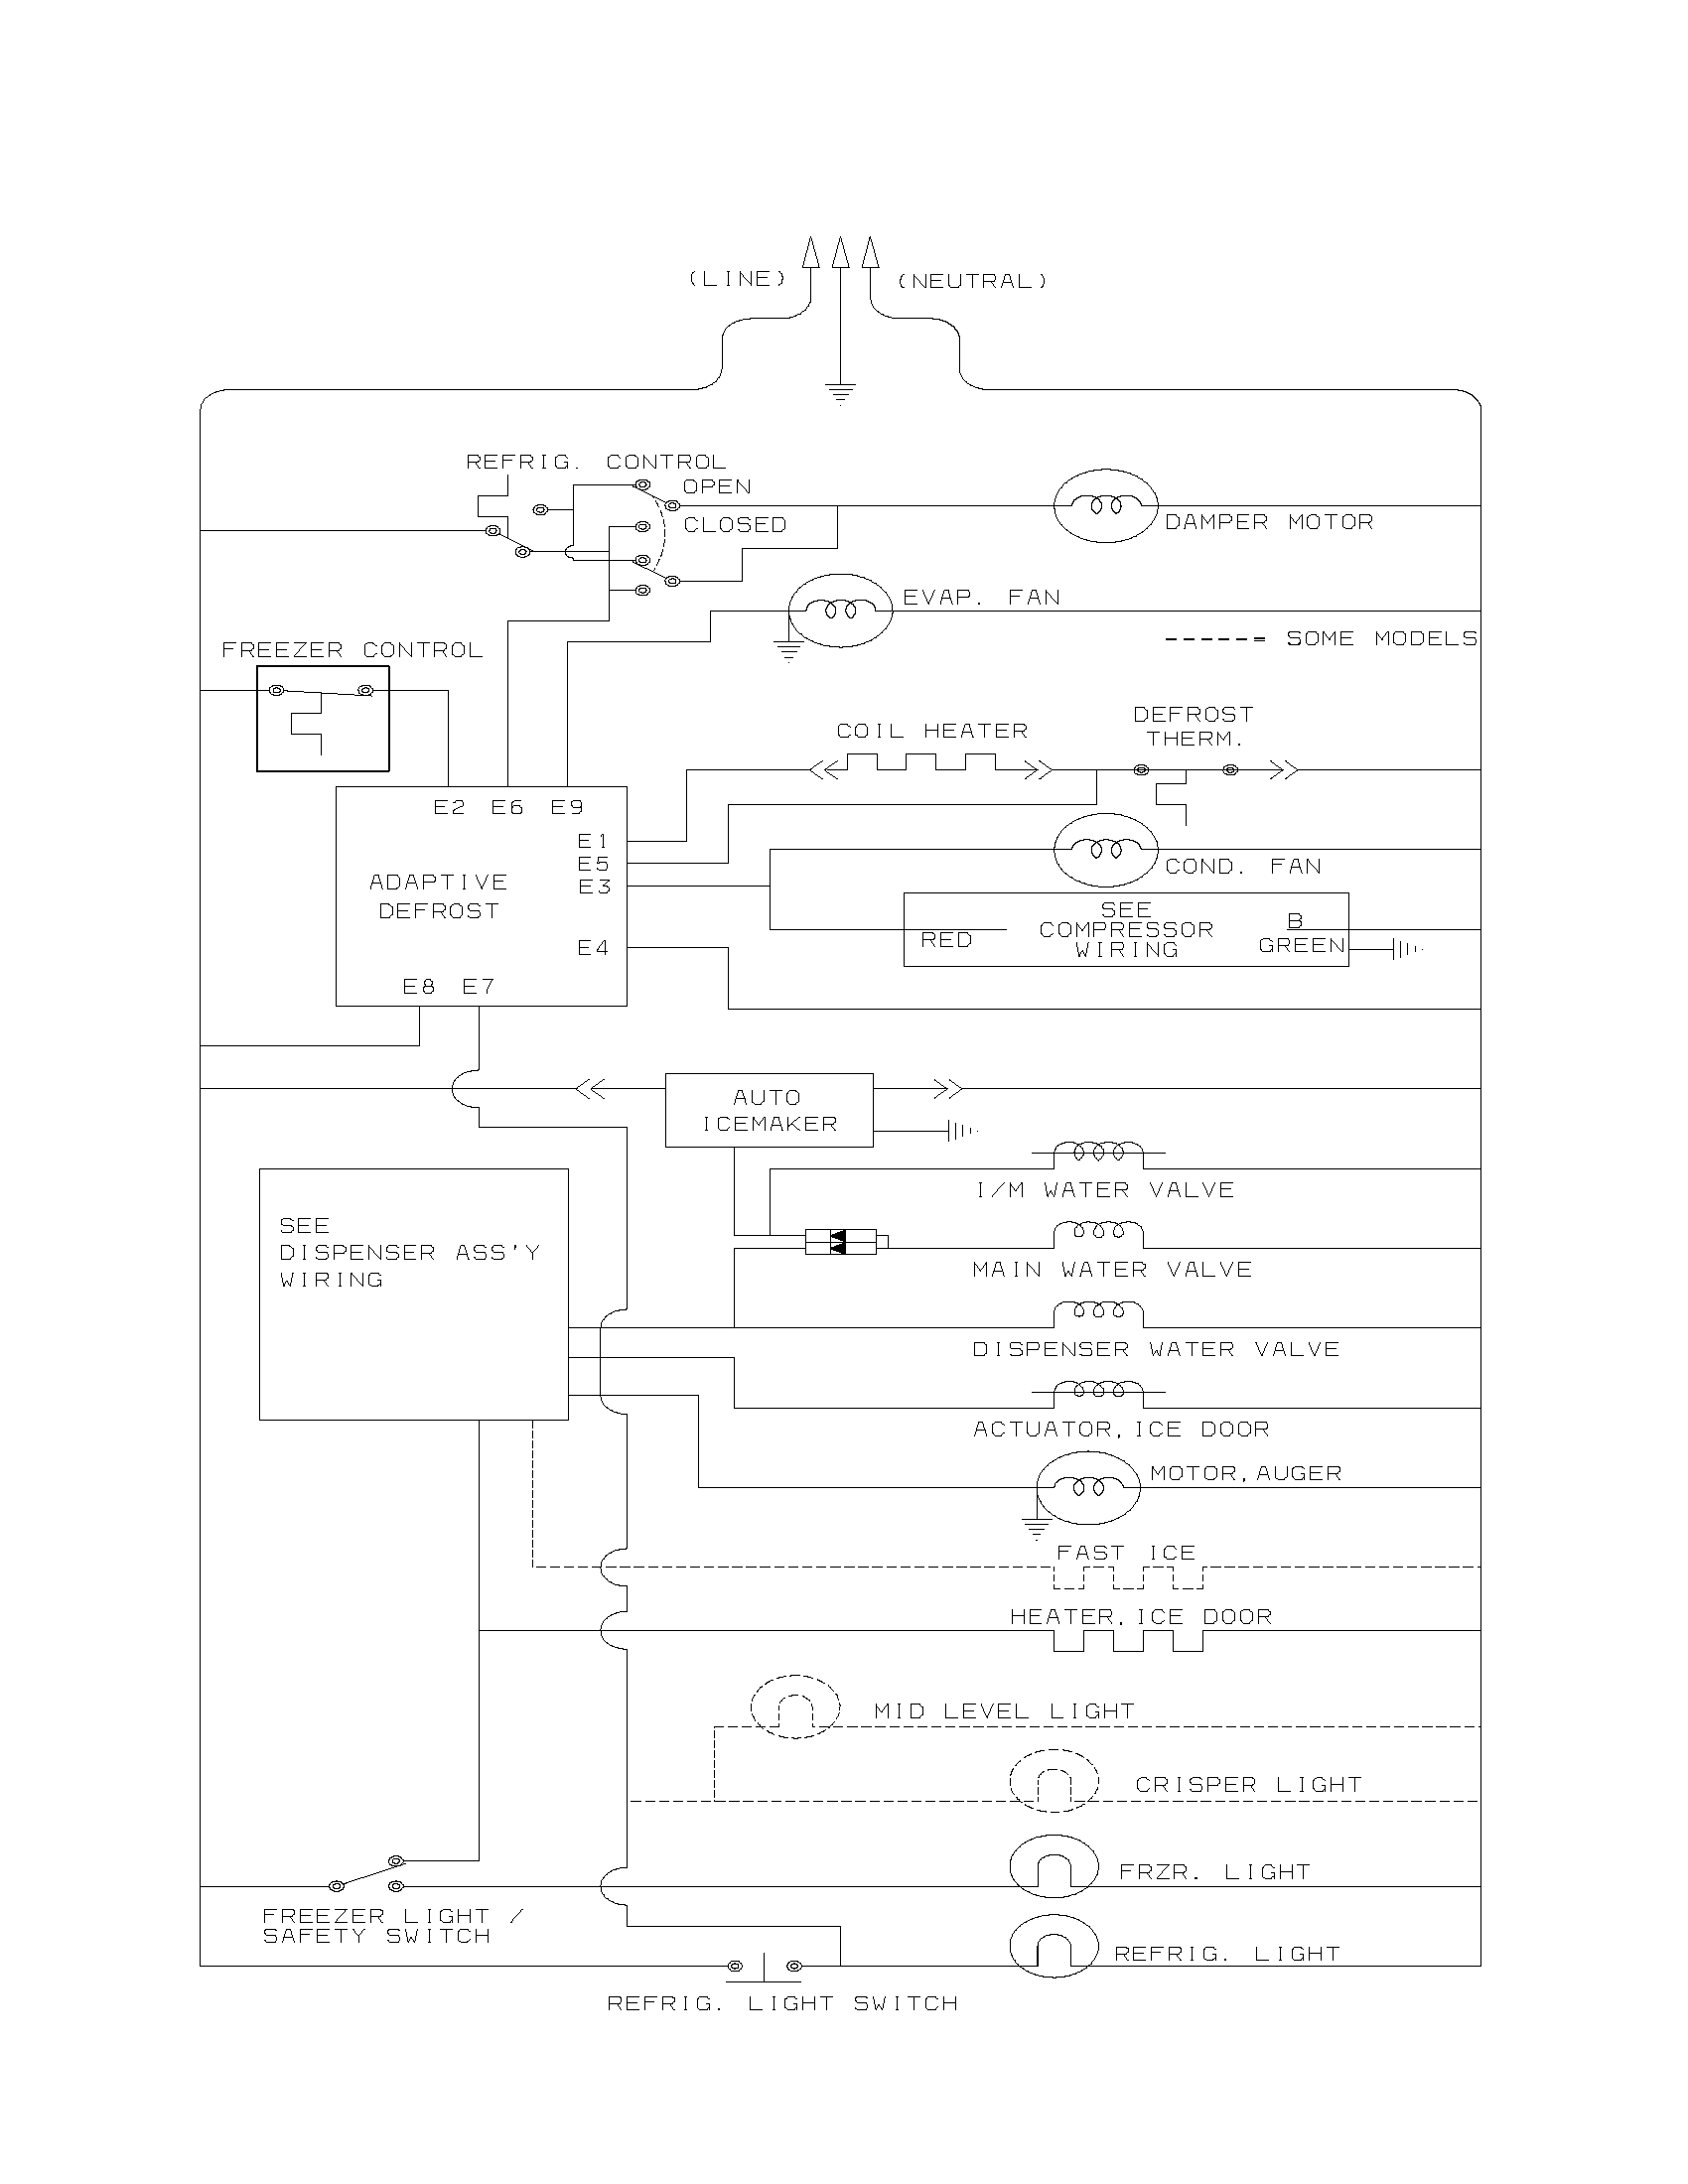 White-Westinghouse WRS23MF5AS5 wiring schematic diagram